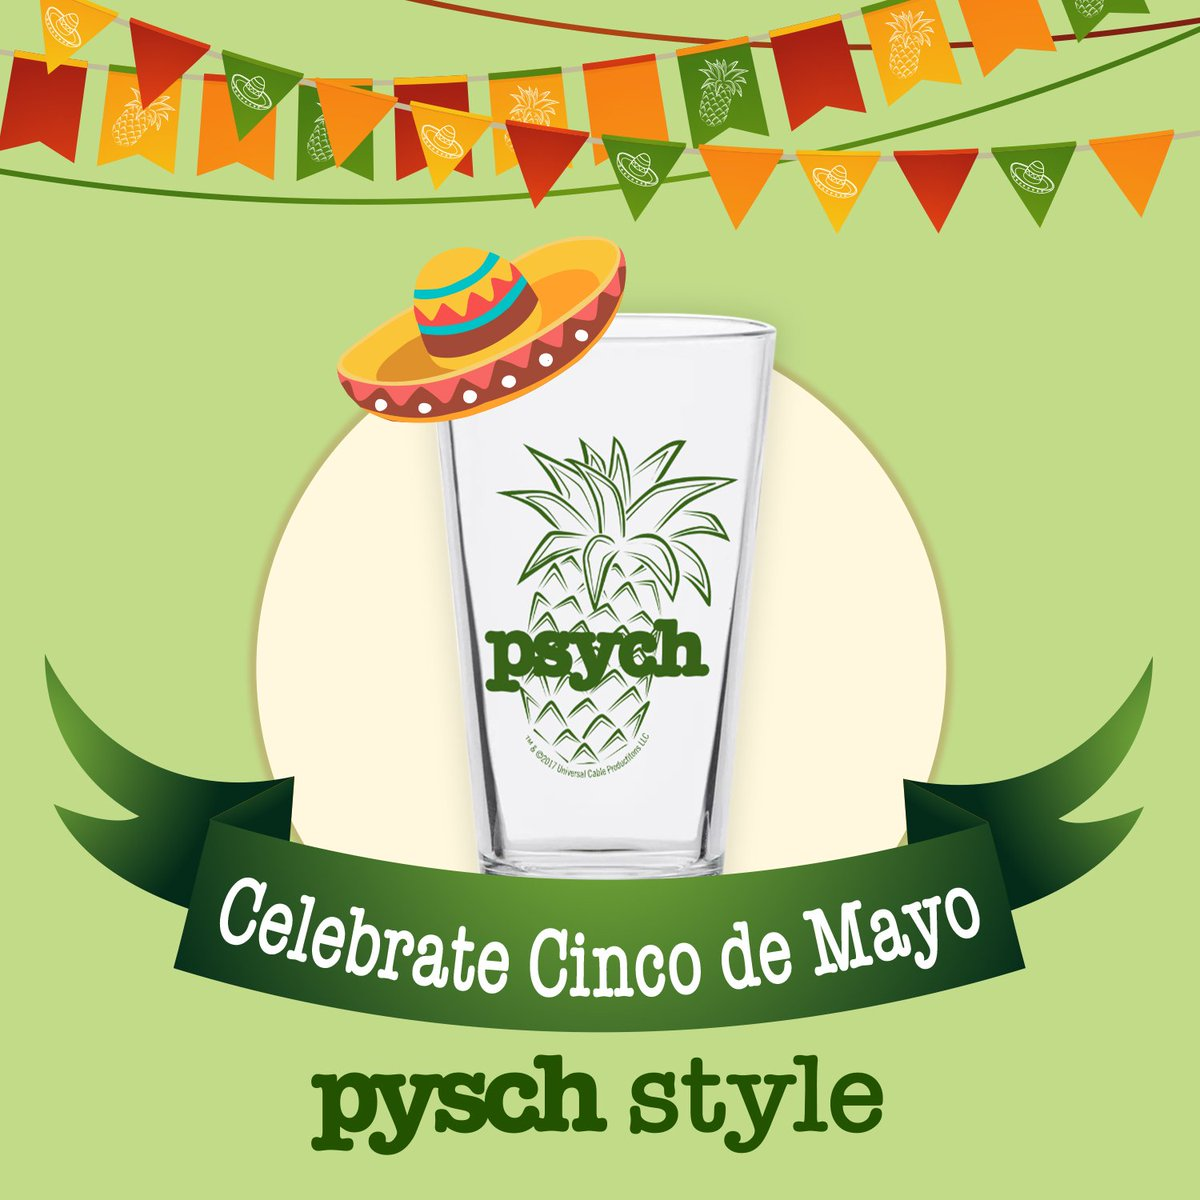 Make it a Psych-O #CincodeMayo with a pineapple pint glass! 🍍 Get yours here: bit.ly/2VHLWjx